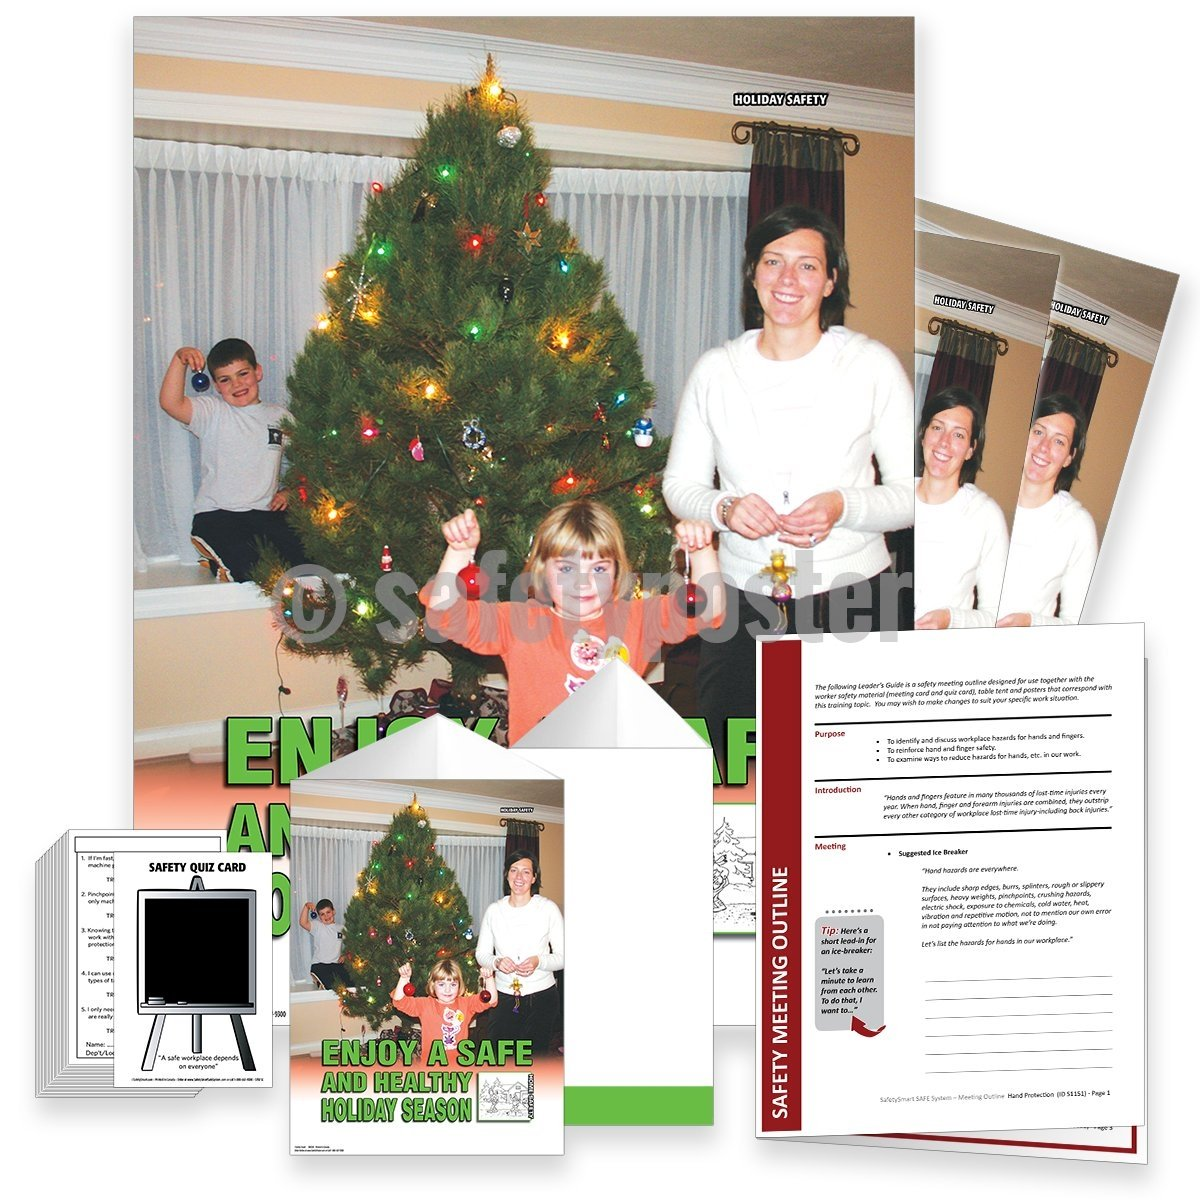 Safety Meeting Kit - Enjoy A Safe And Healthy Holiday Season